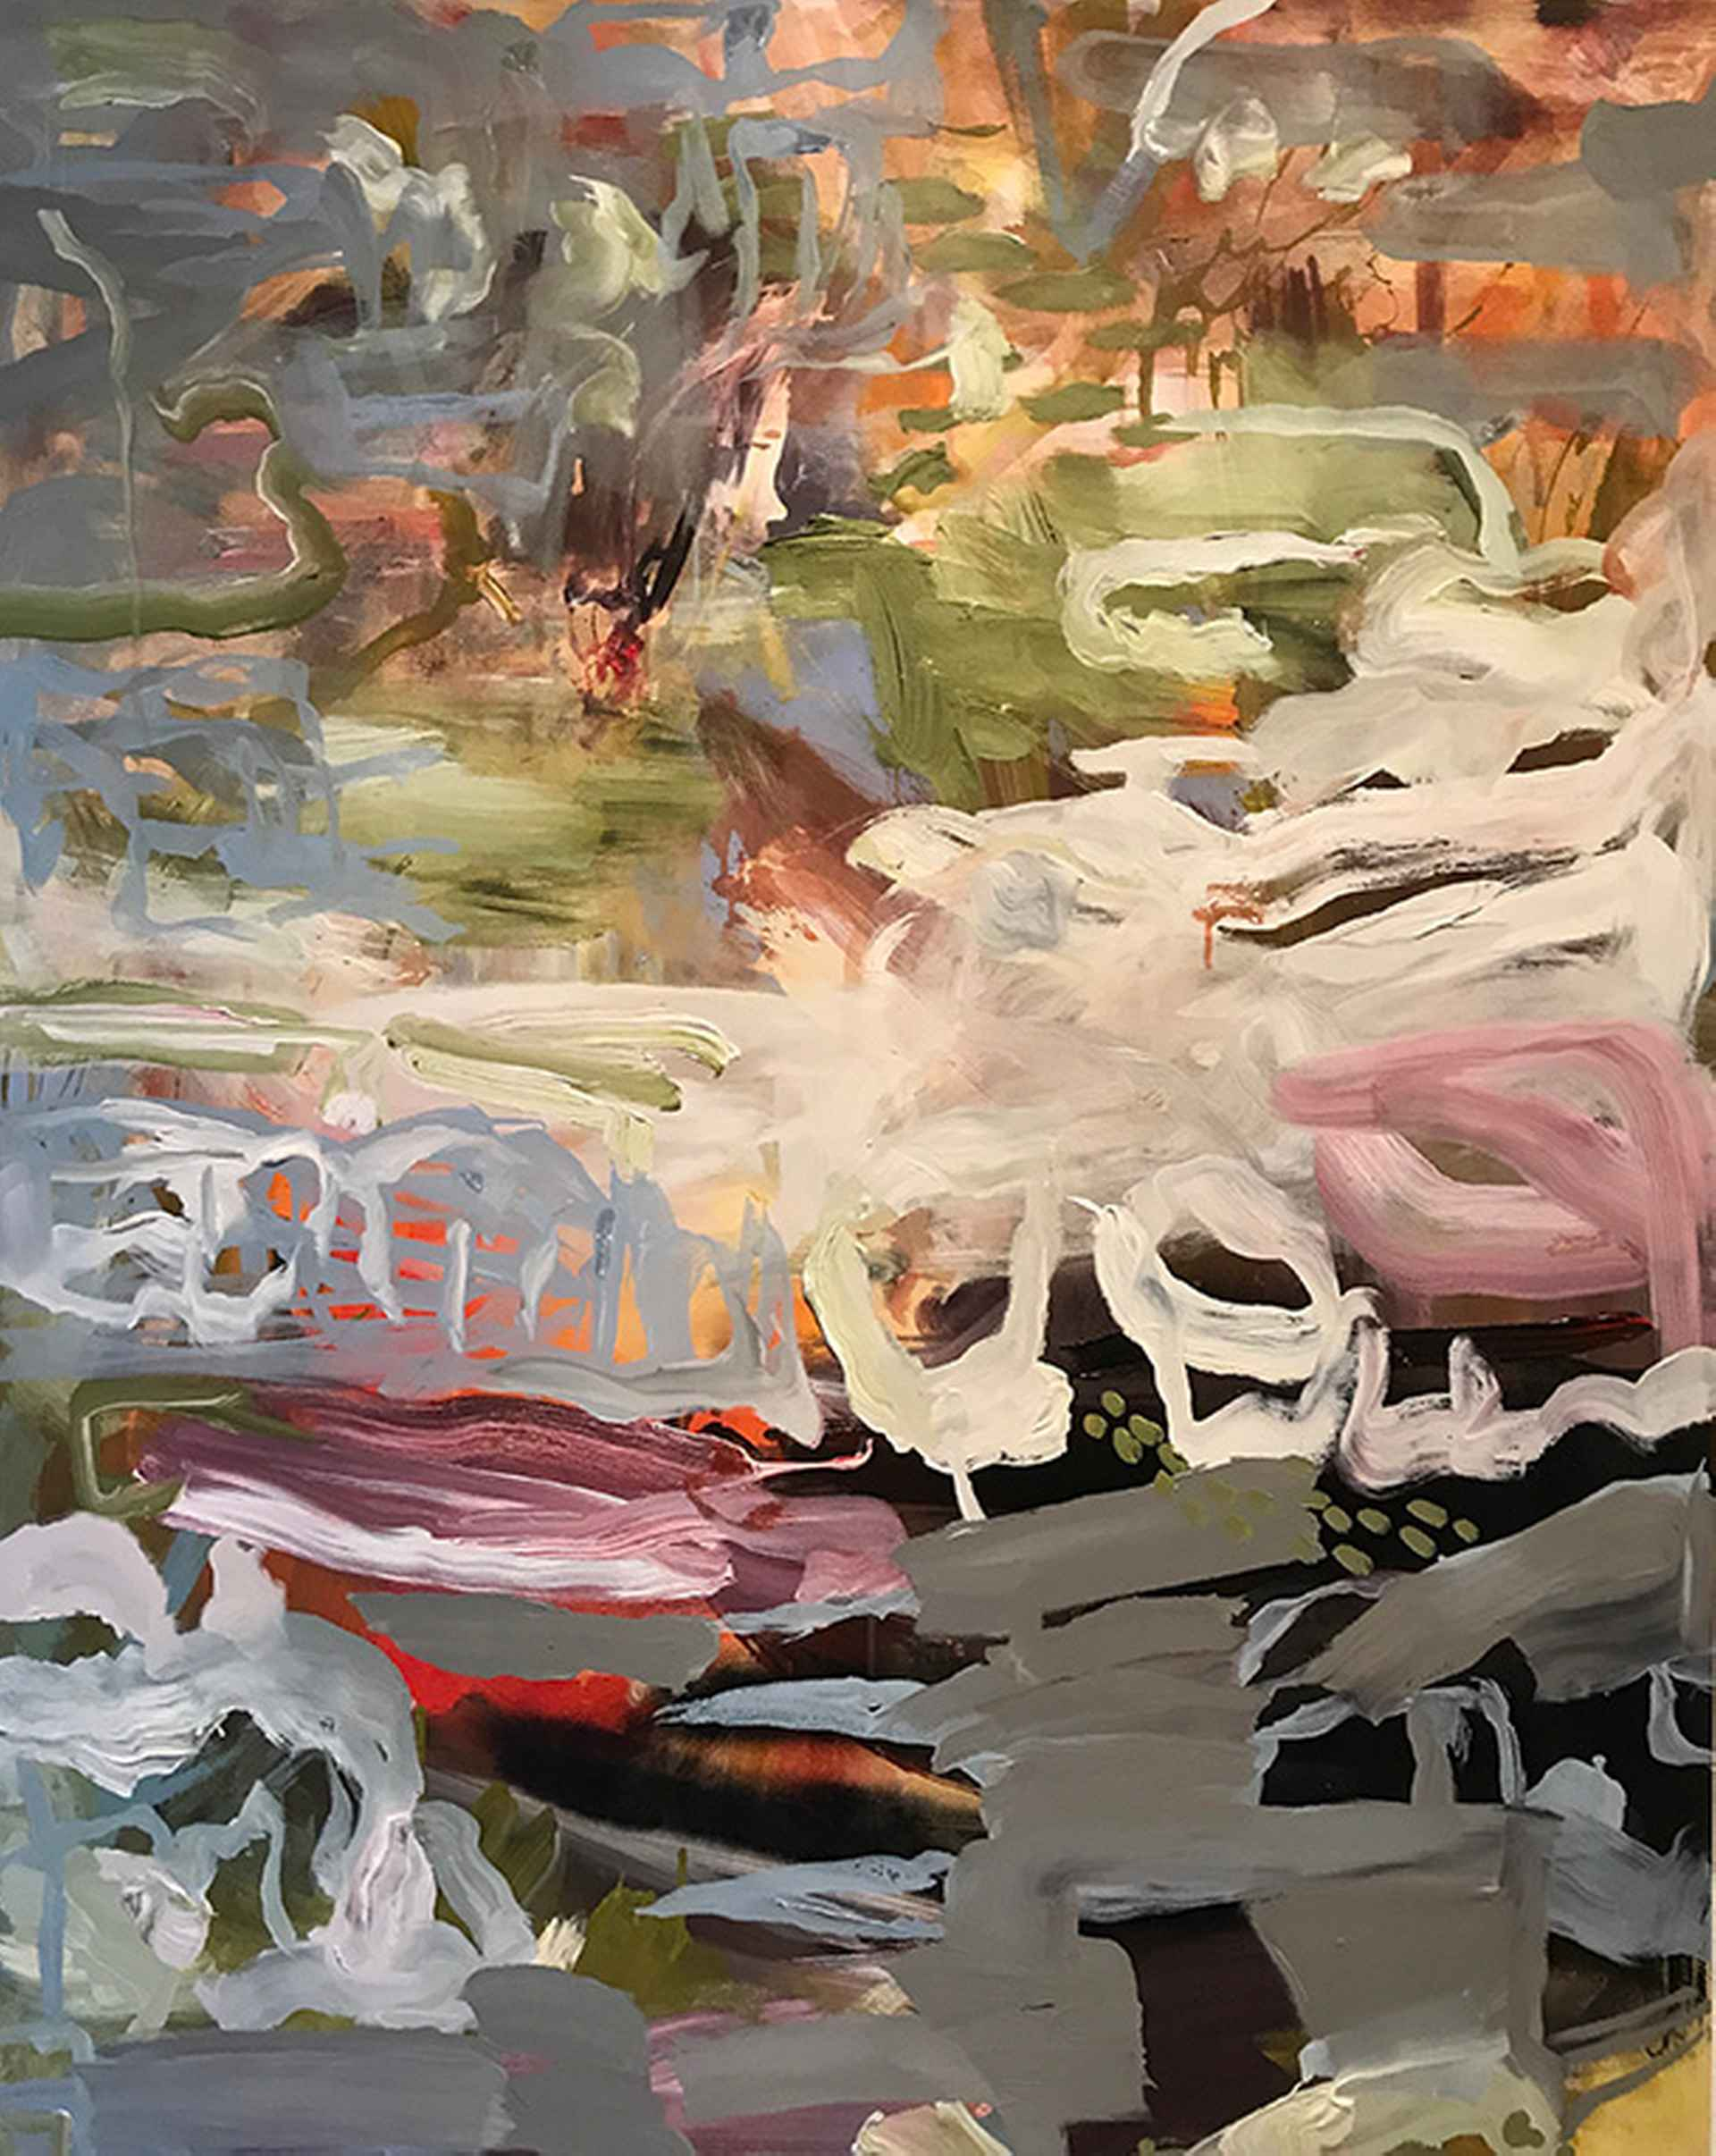 Untitled (2019) by Ian Rayer-Smith